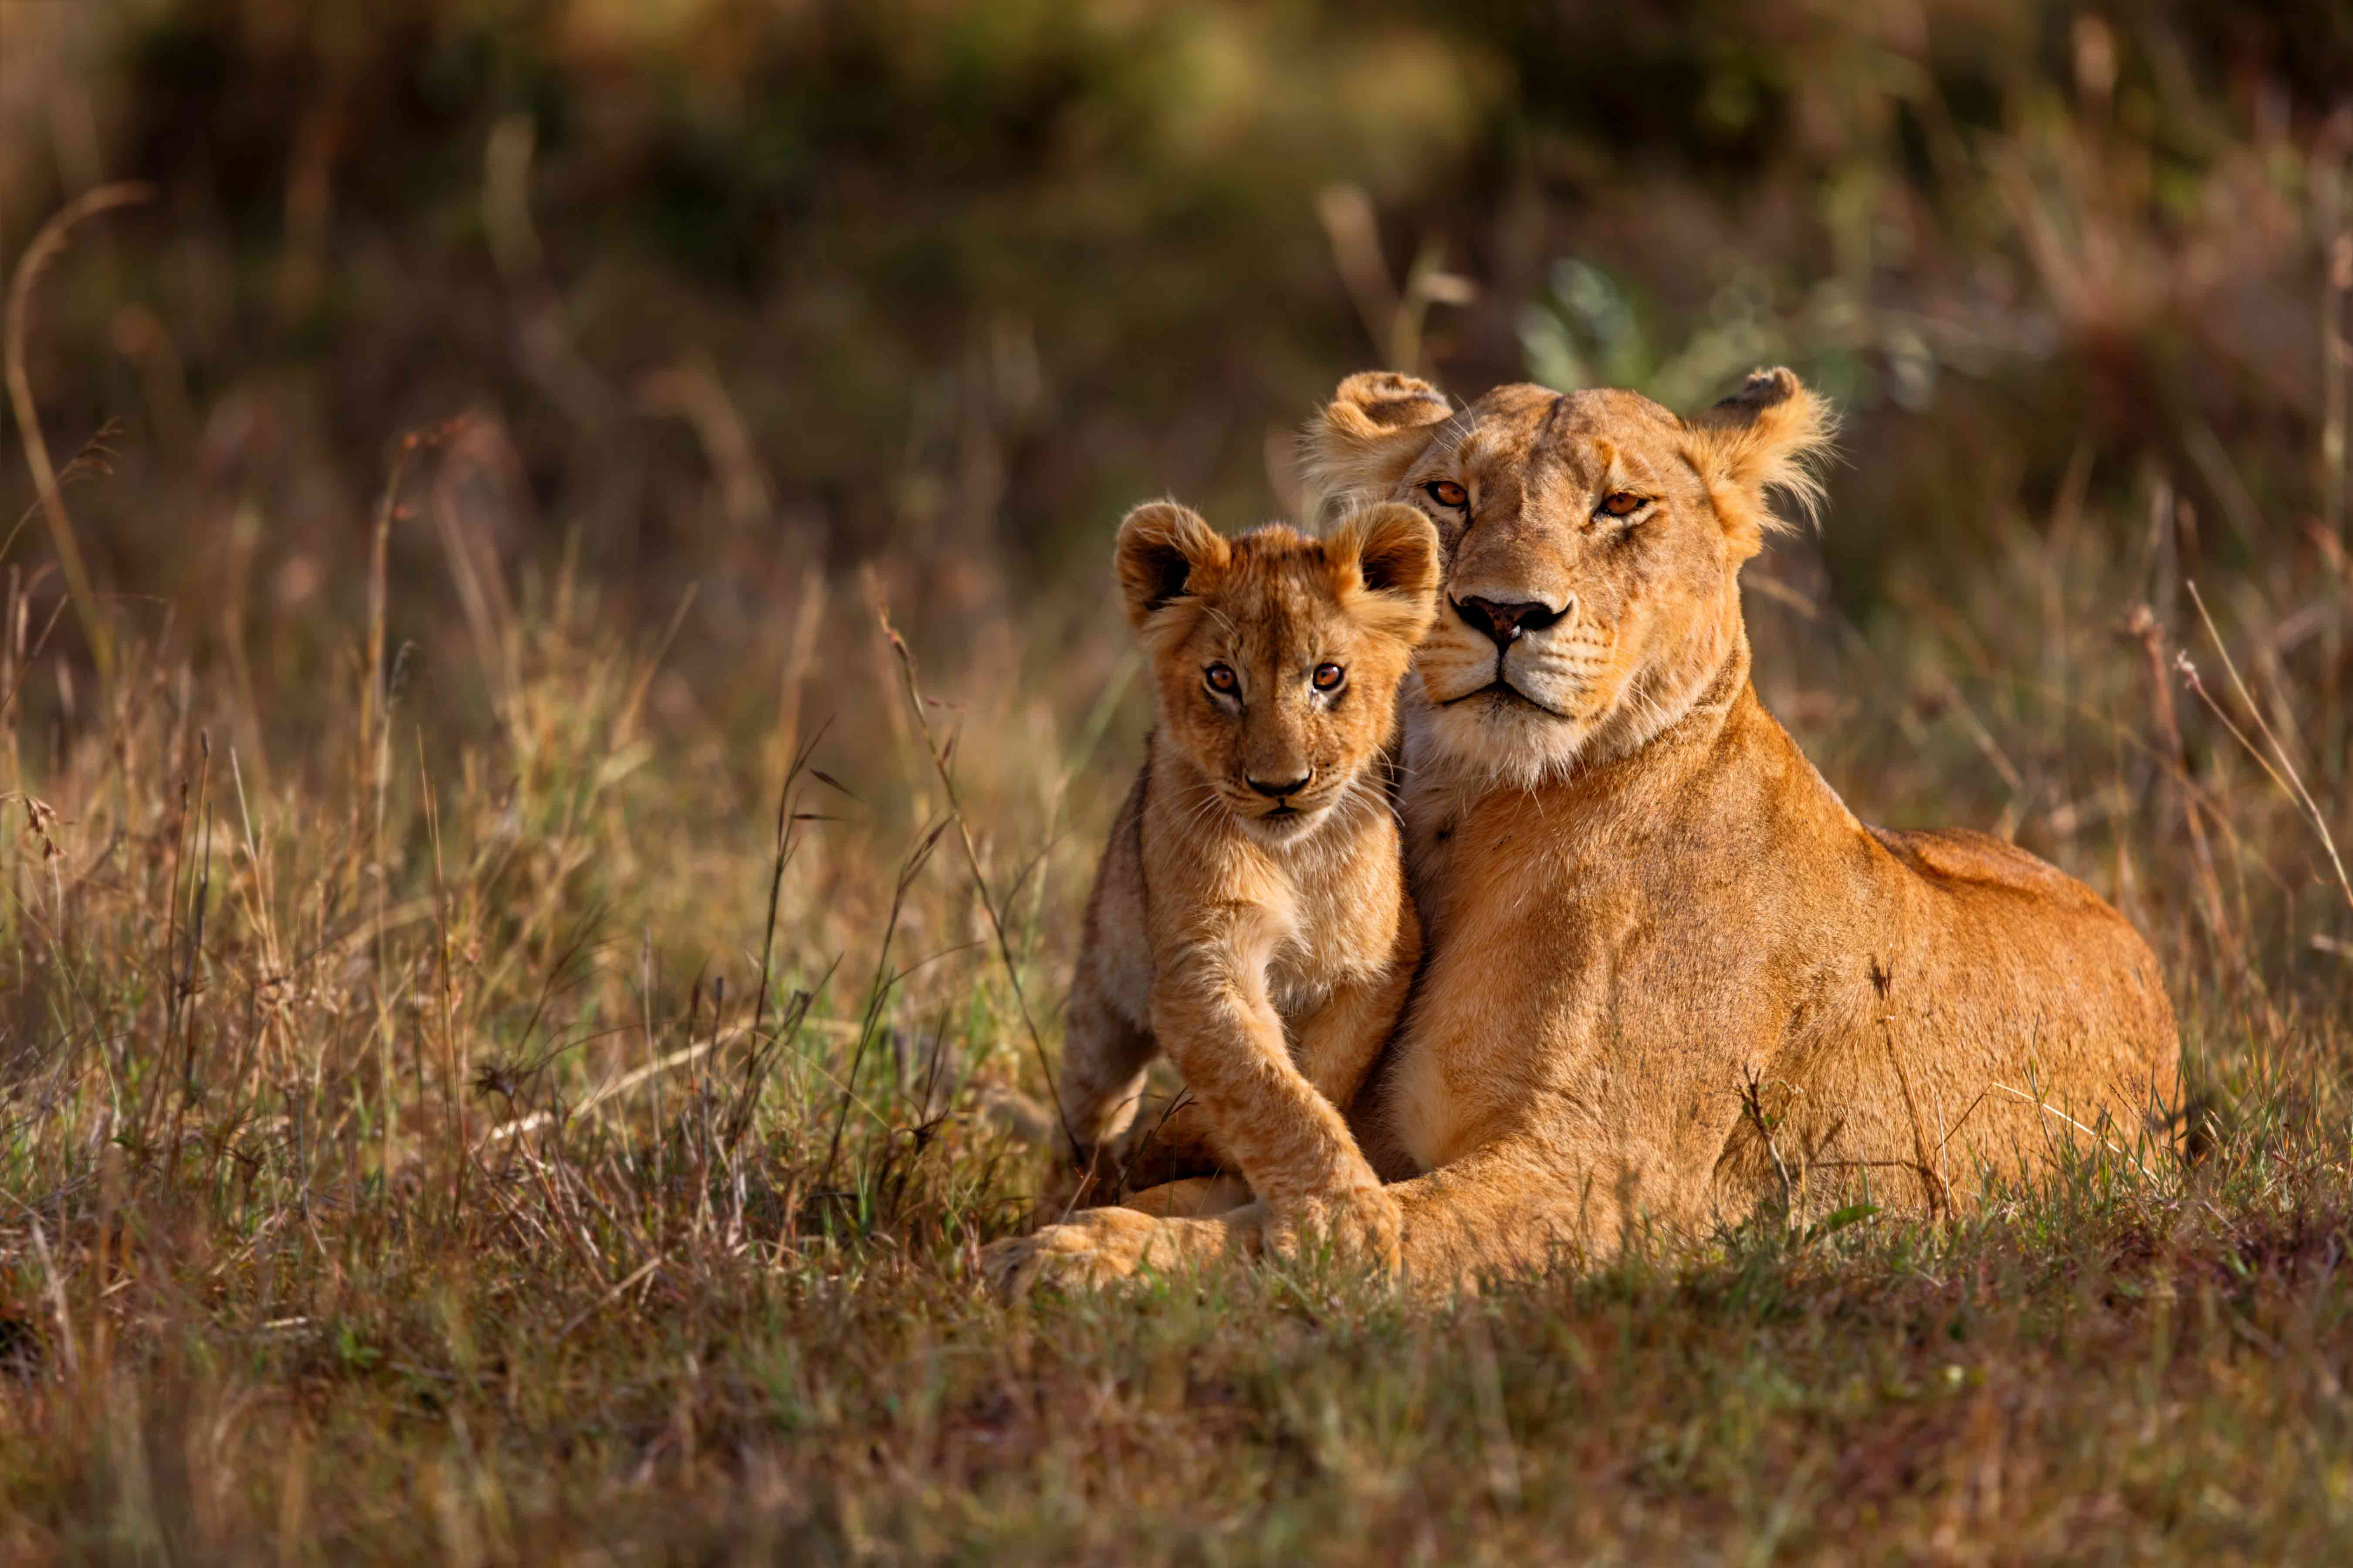 Adult female lion with a cub